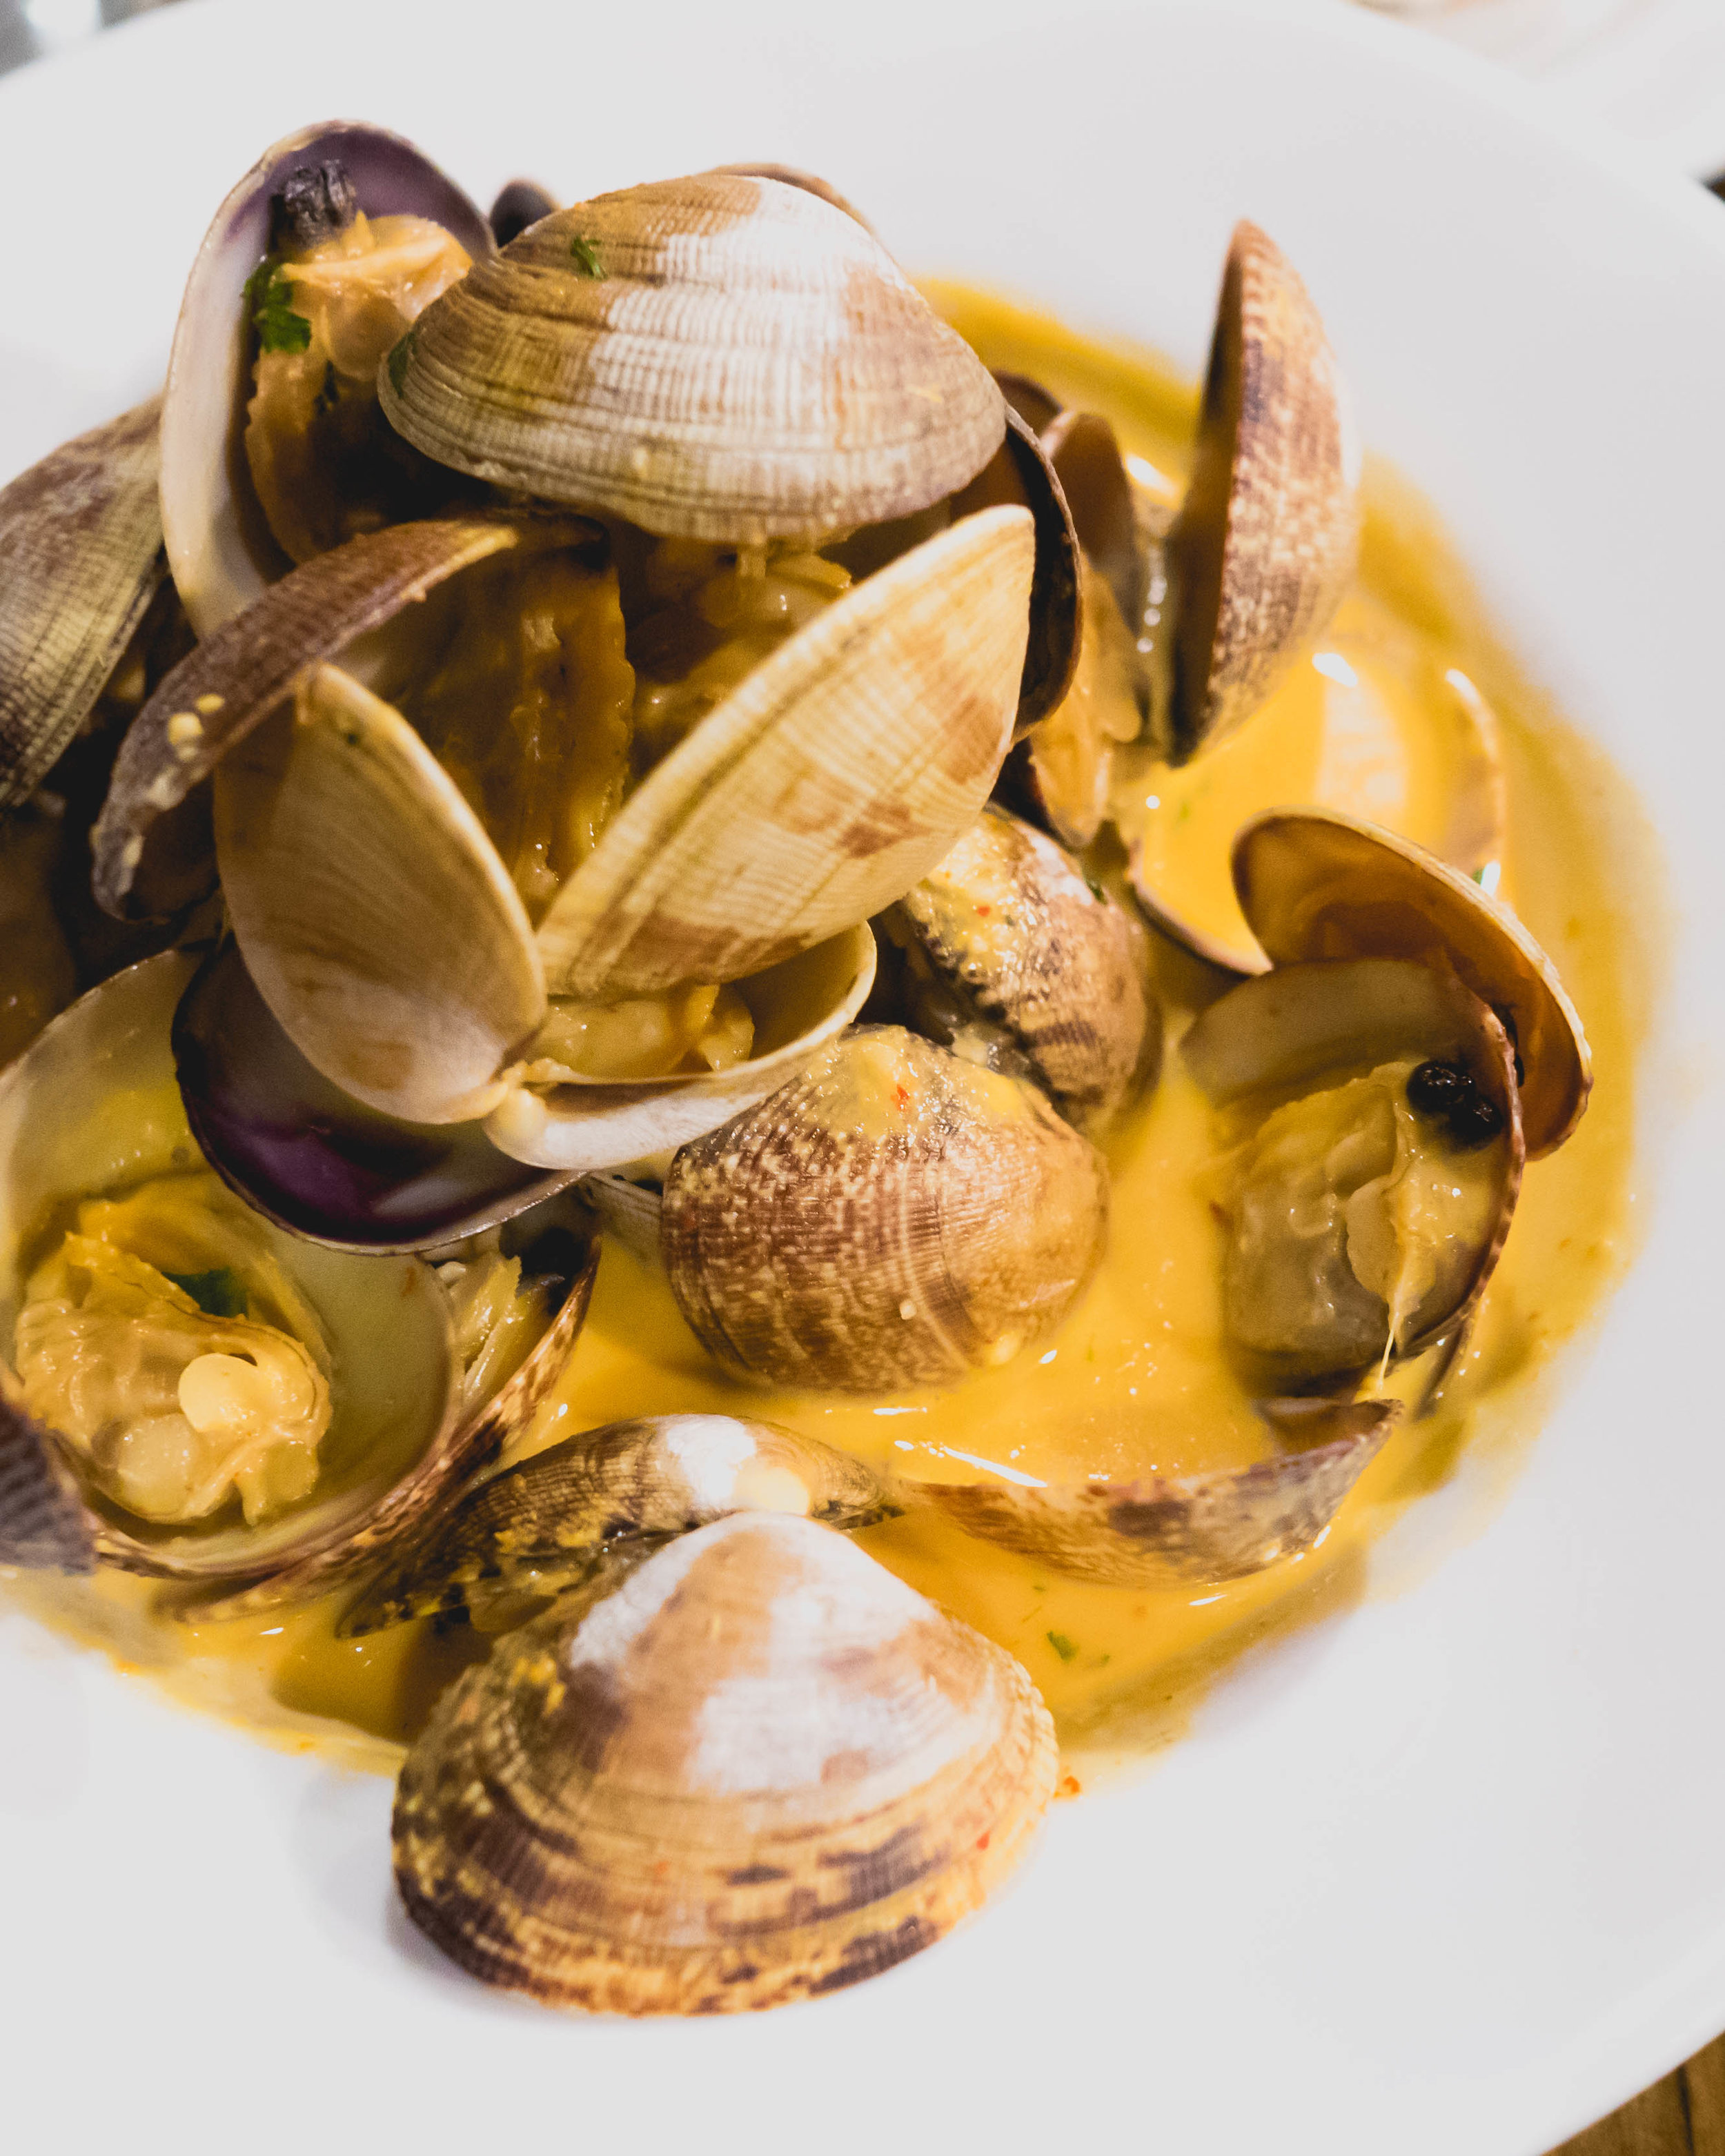 curry clams : manila clams, curry coconut broth, basil, cilantro, grilled garlic bread (not pictured).